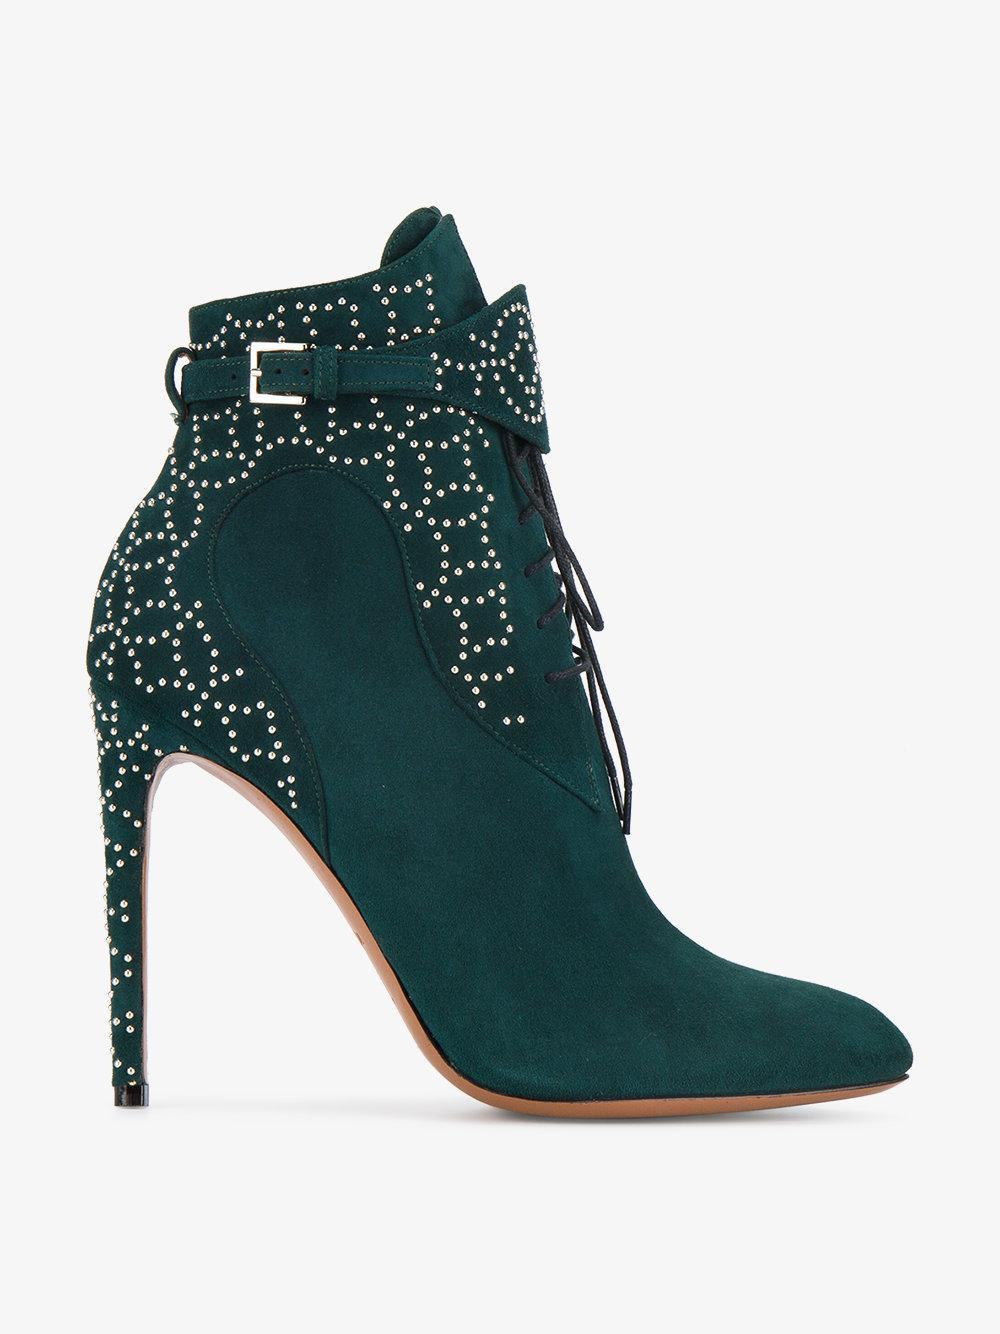 Green Studded Lace Up 110 suede boots Alaia Lnkc2JD